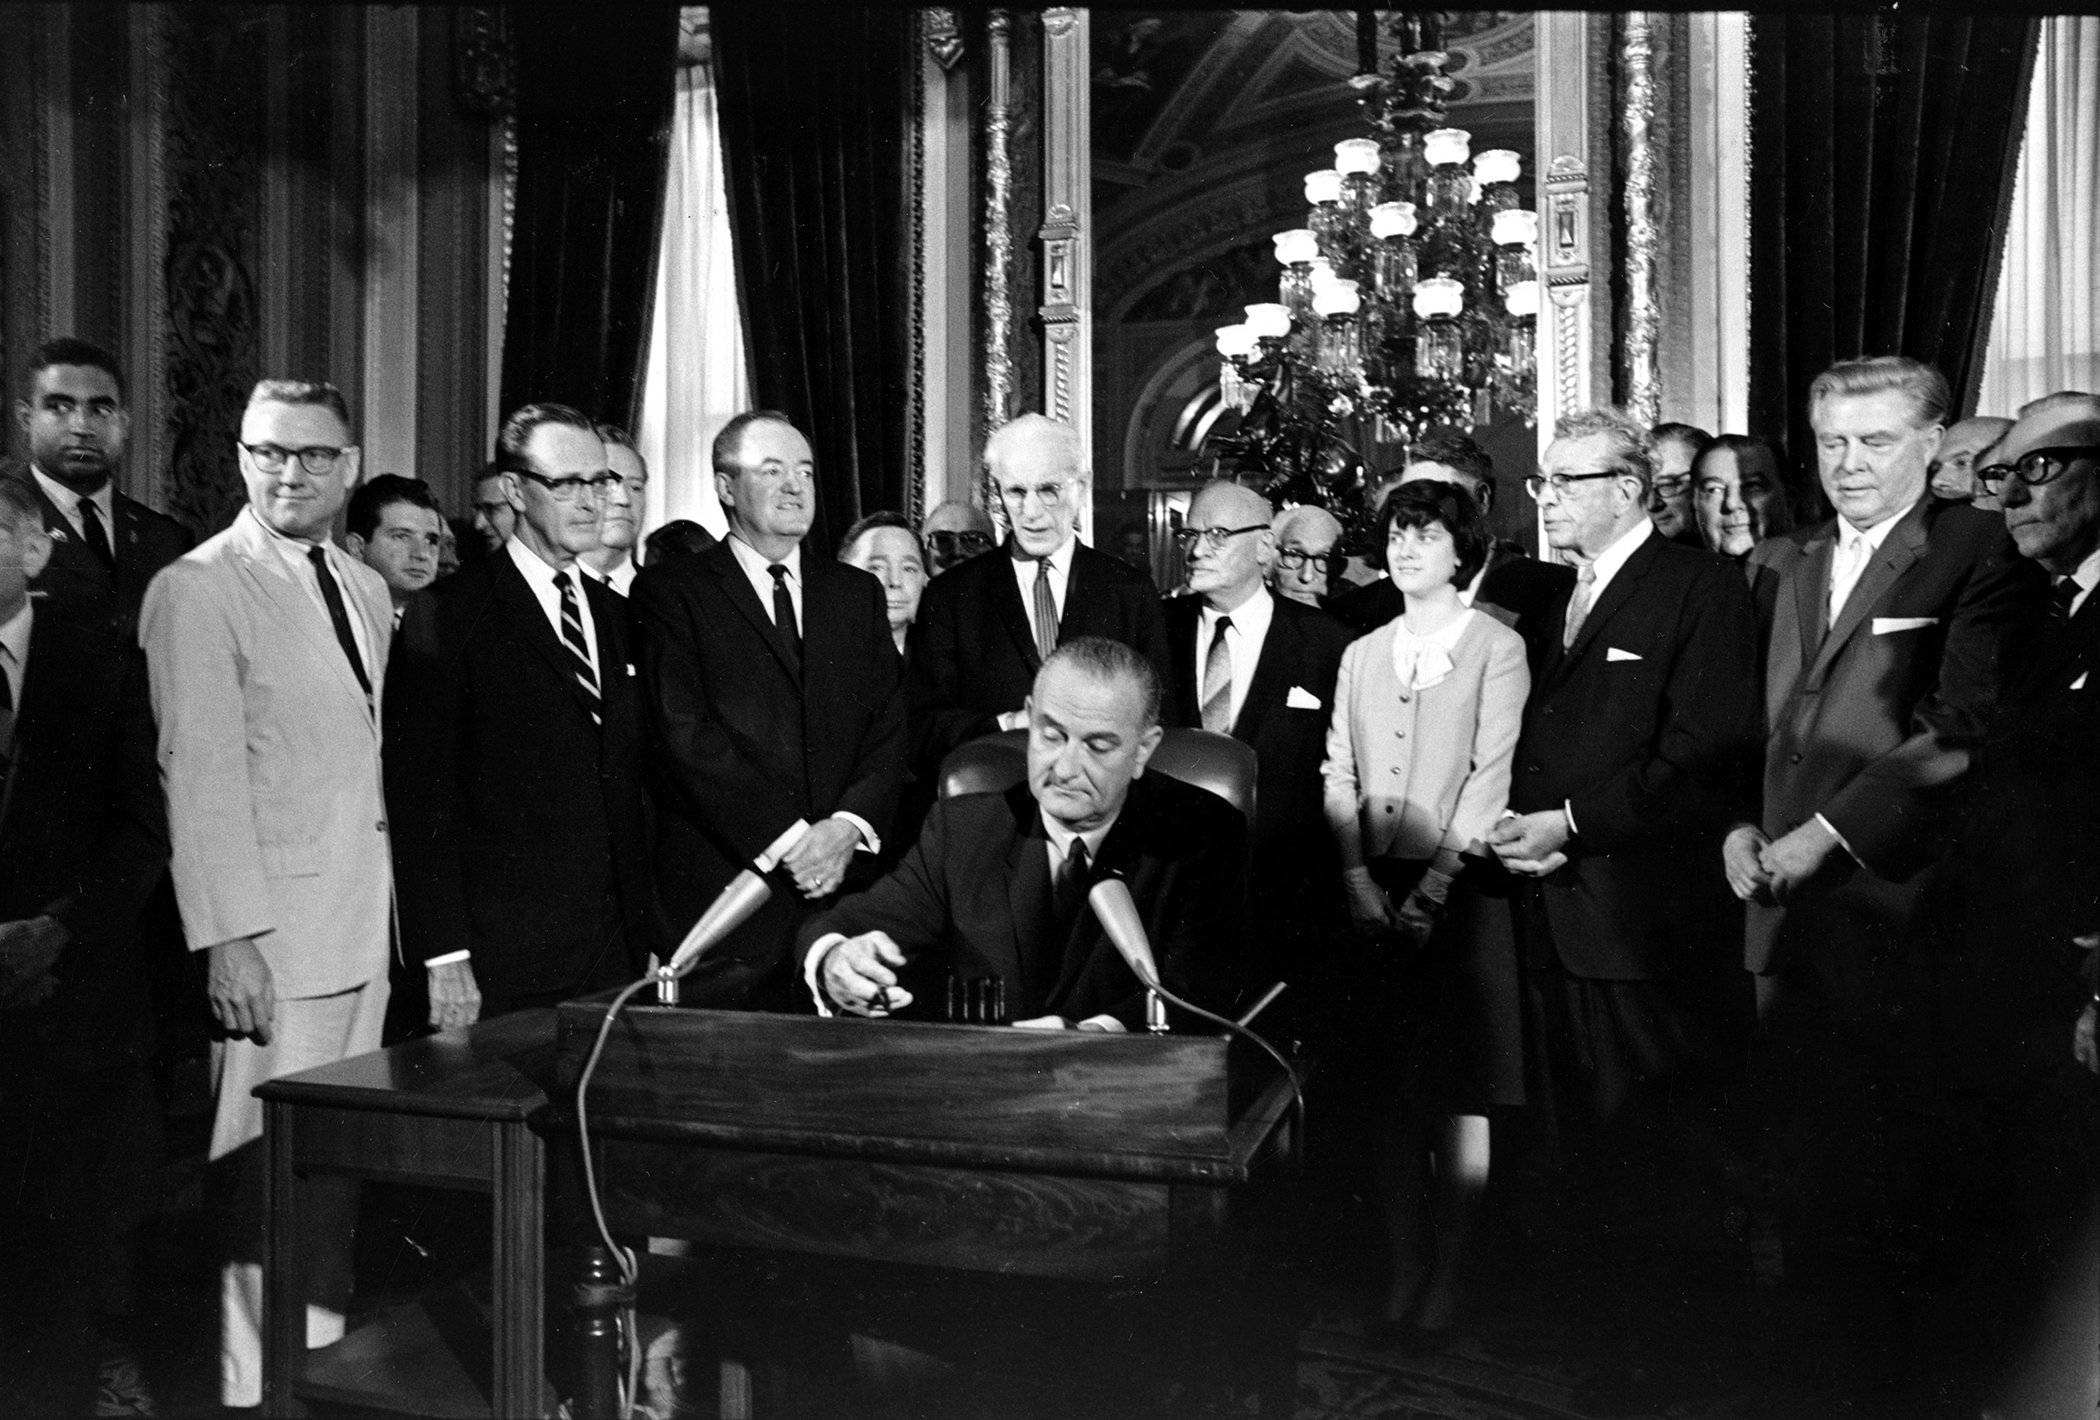 LBJ-Voting-Rights-Act-United-States.jpg